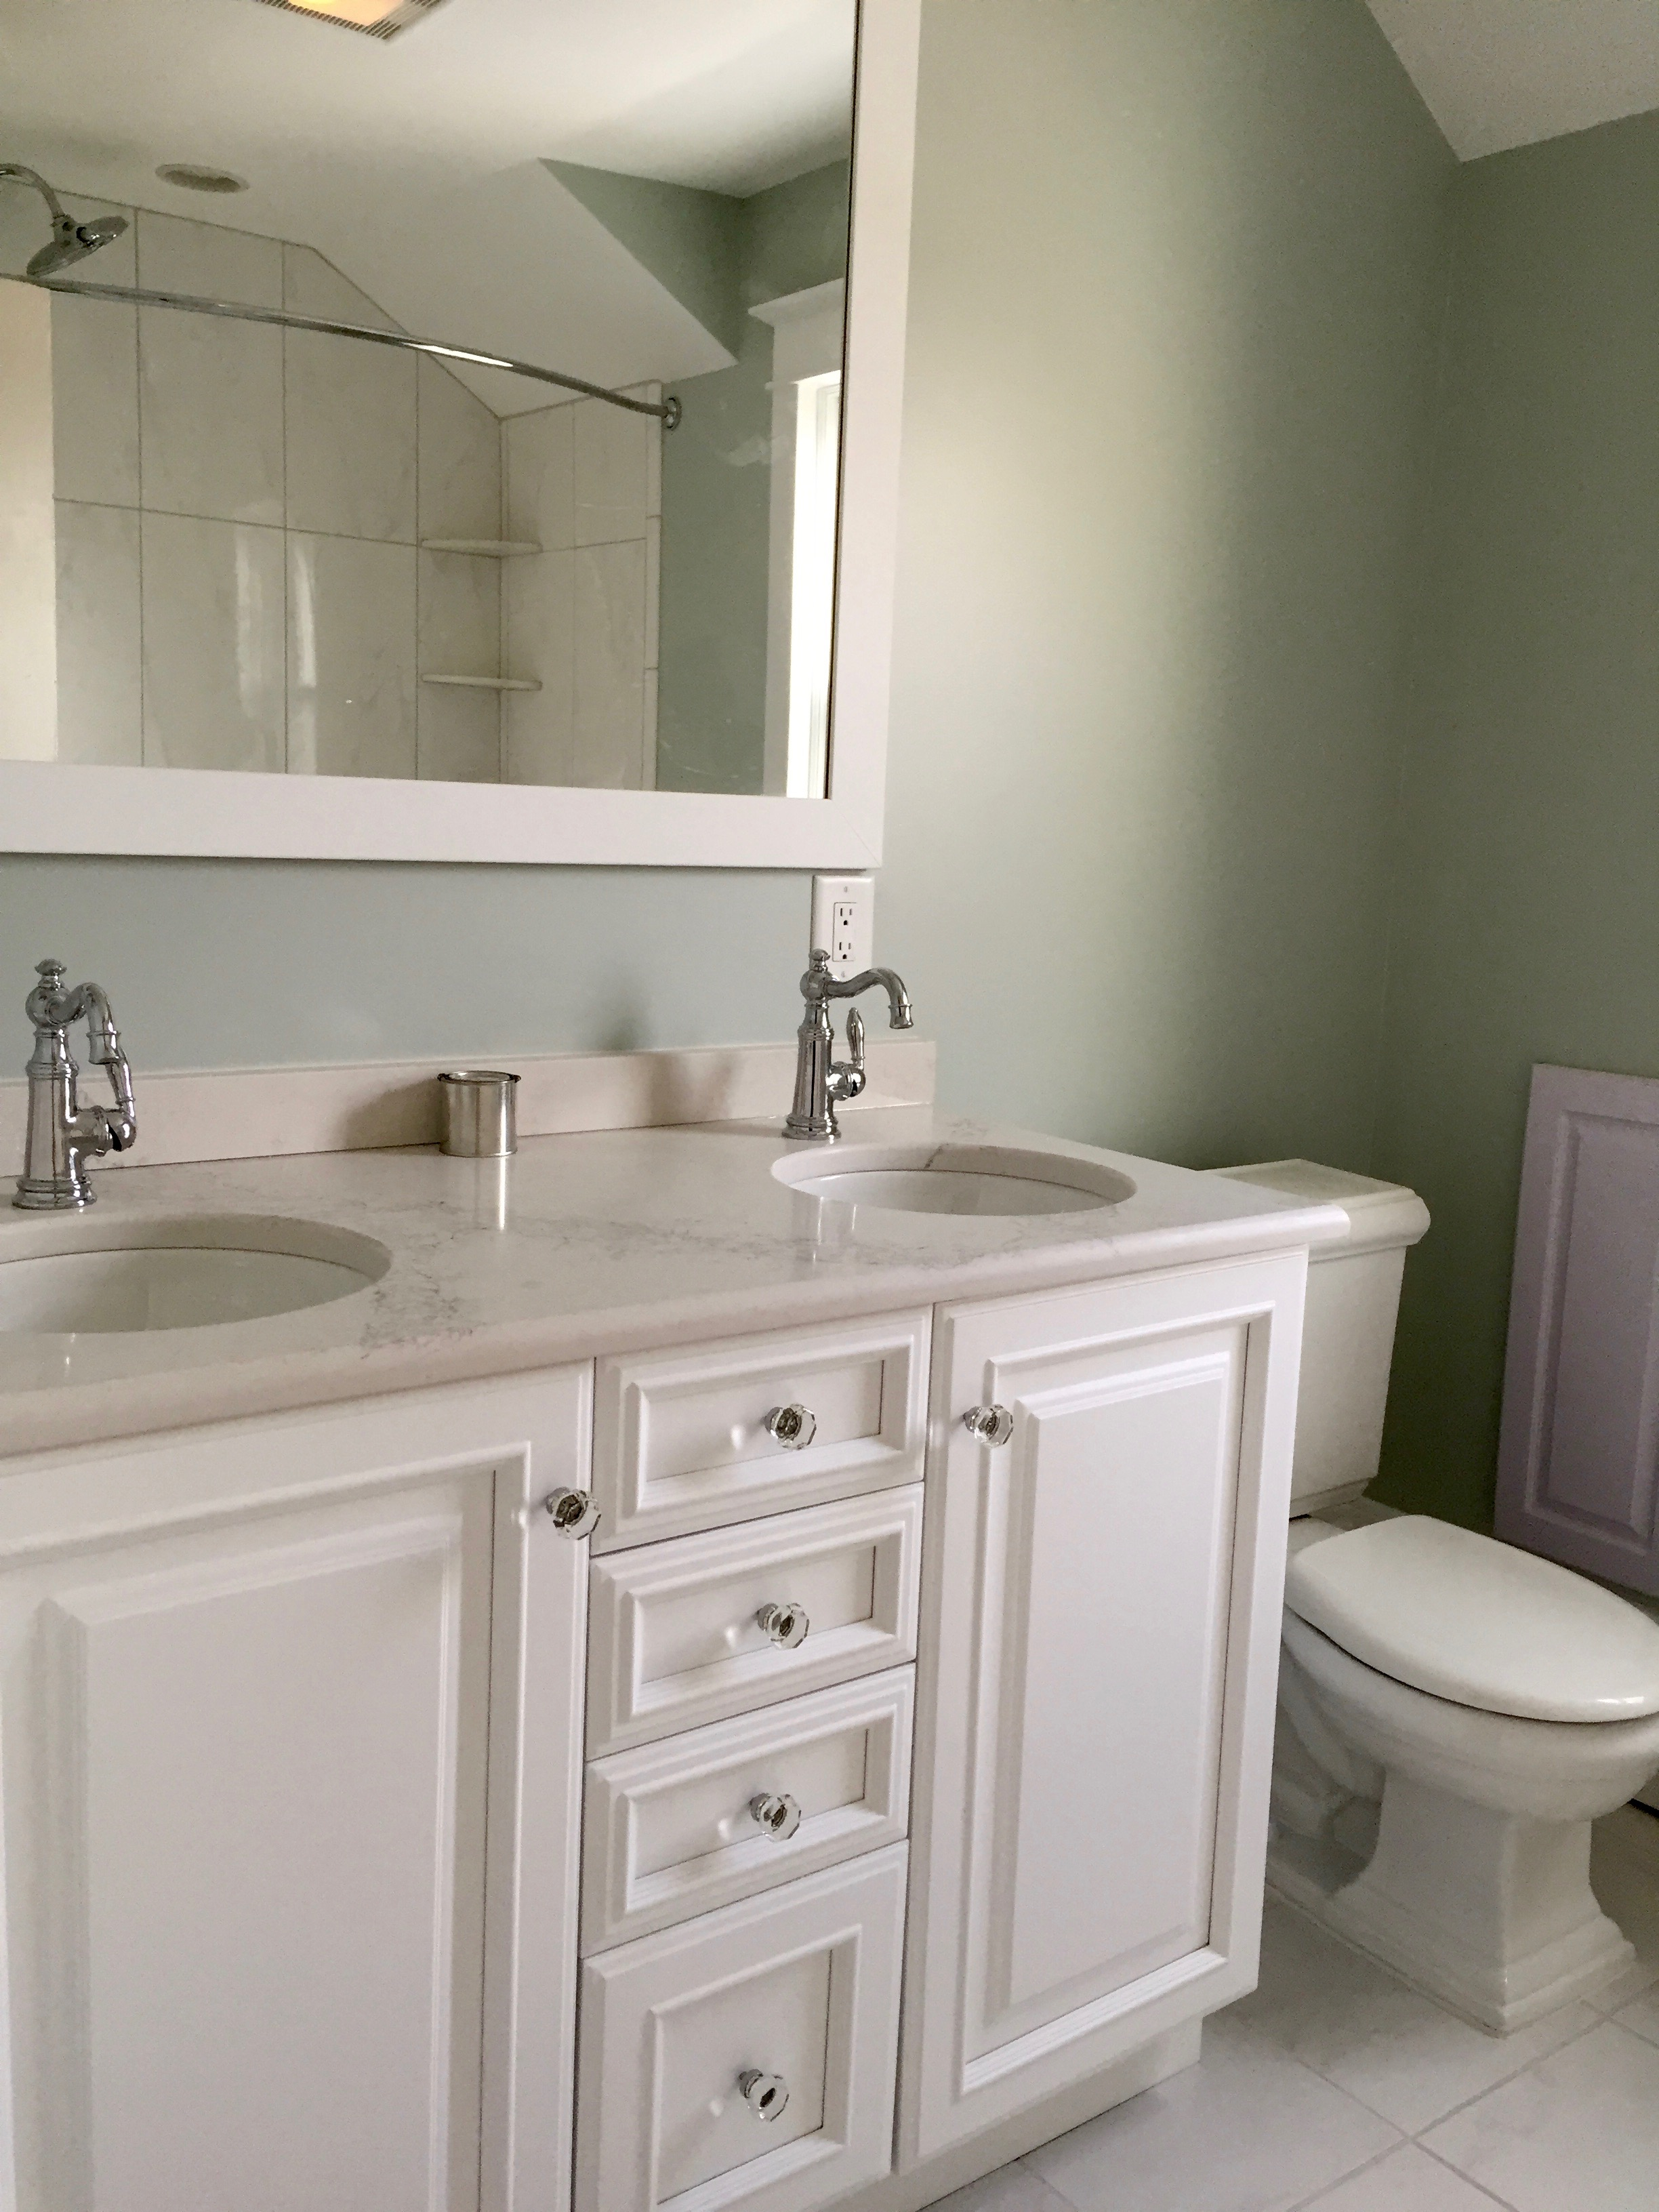 Bathroom renovation in newfield located in south jersey for Bathroom remodel nj